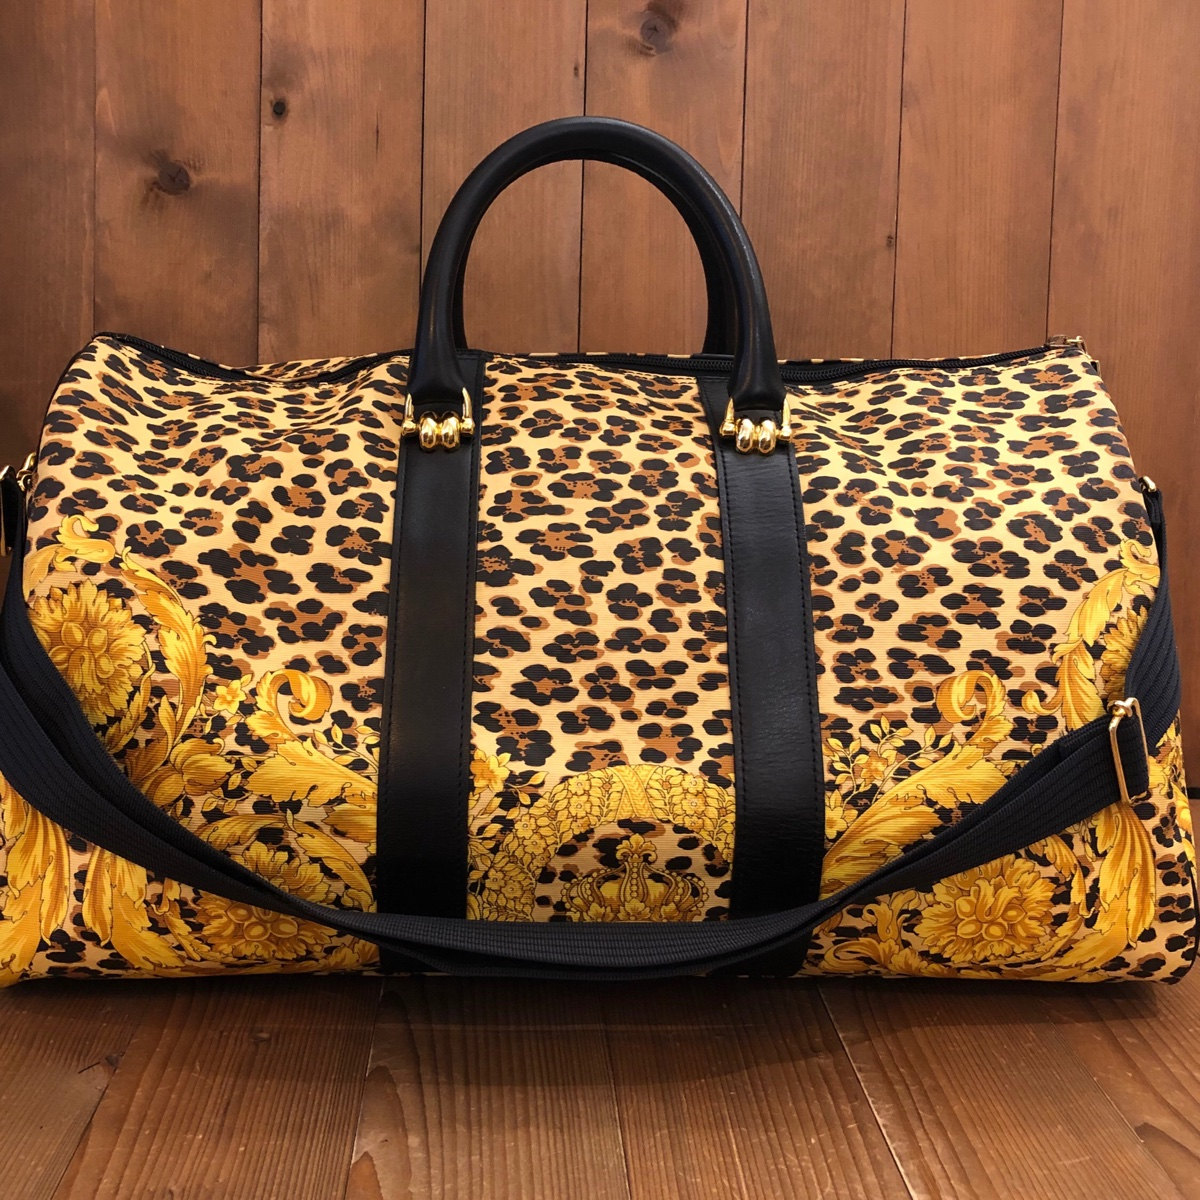 Authentic Gianni Versace Leopard Canvas Duffle Bag